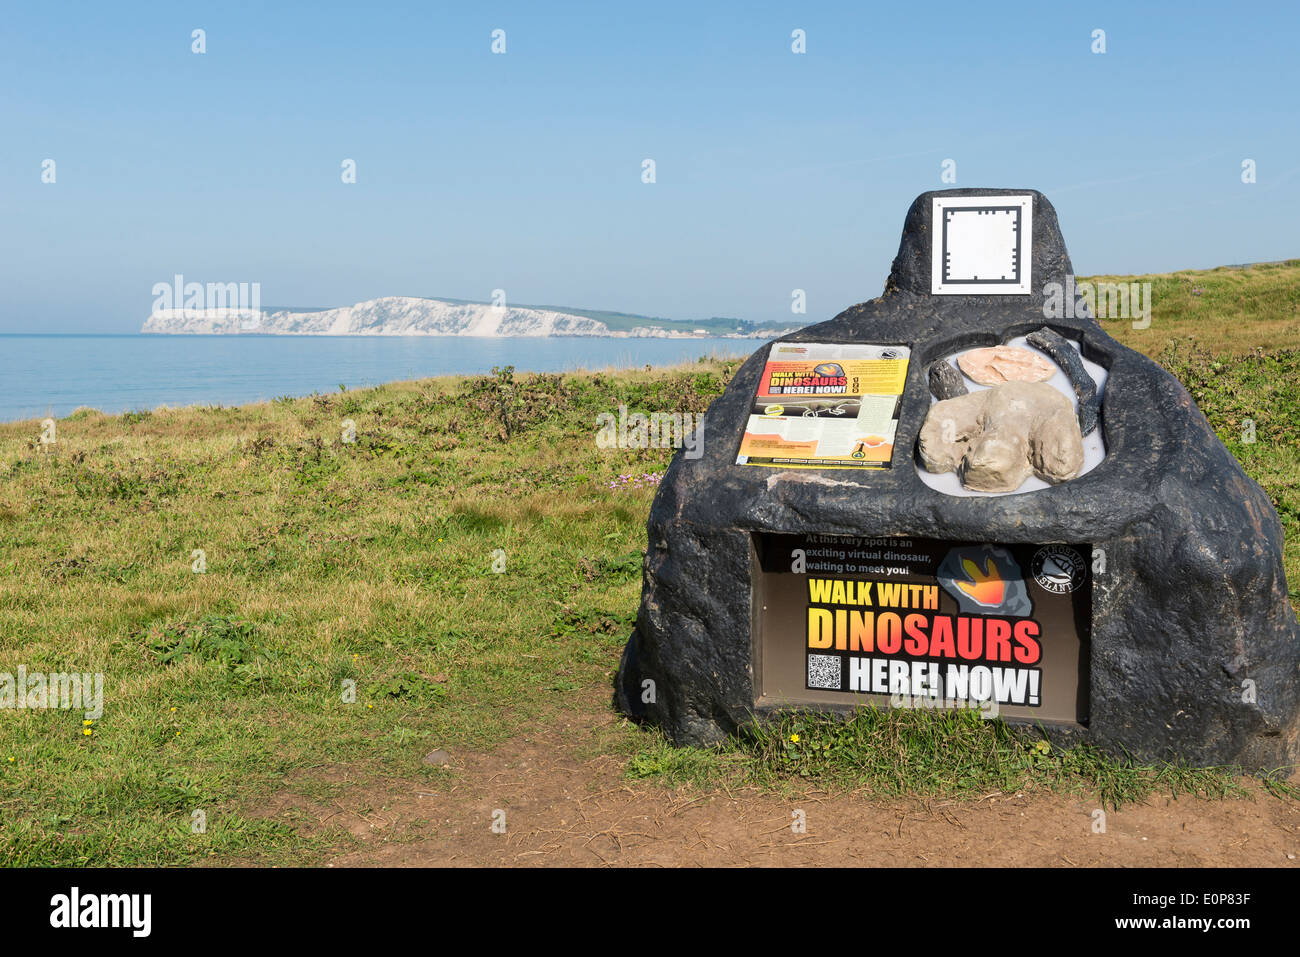 Walk with dinosaurs where you can download an app and at this spot is an exiting virtual dinosaur waiting to meet you. IOW Stock Photo